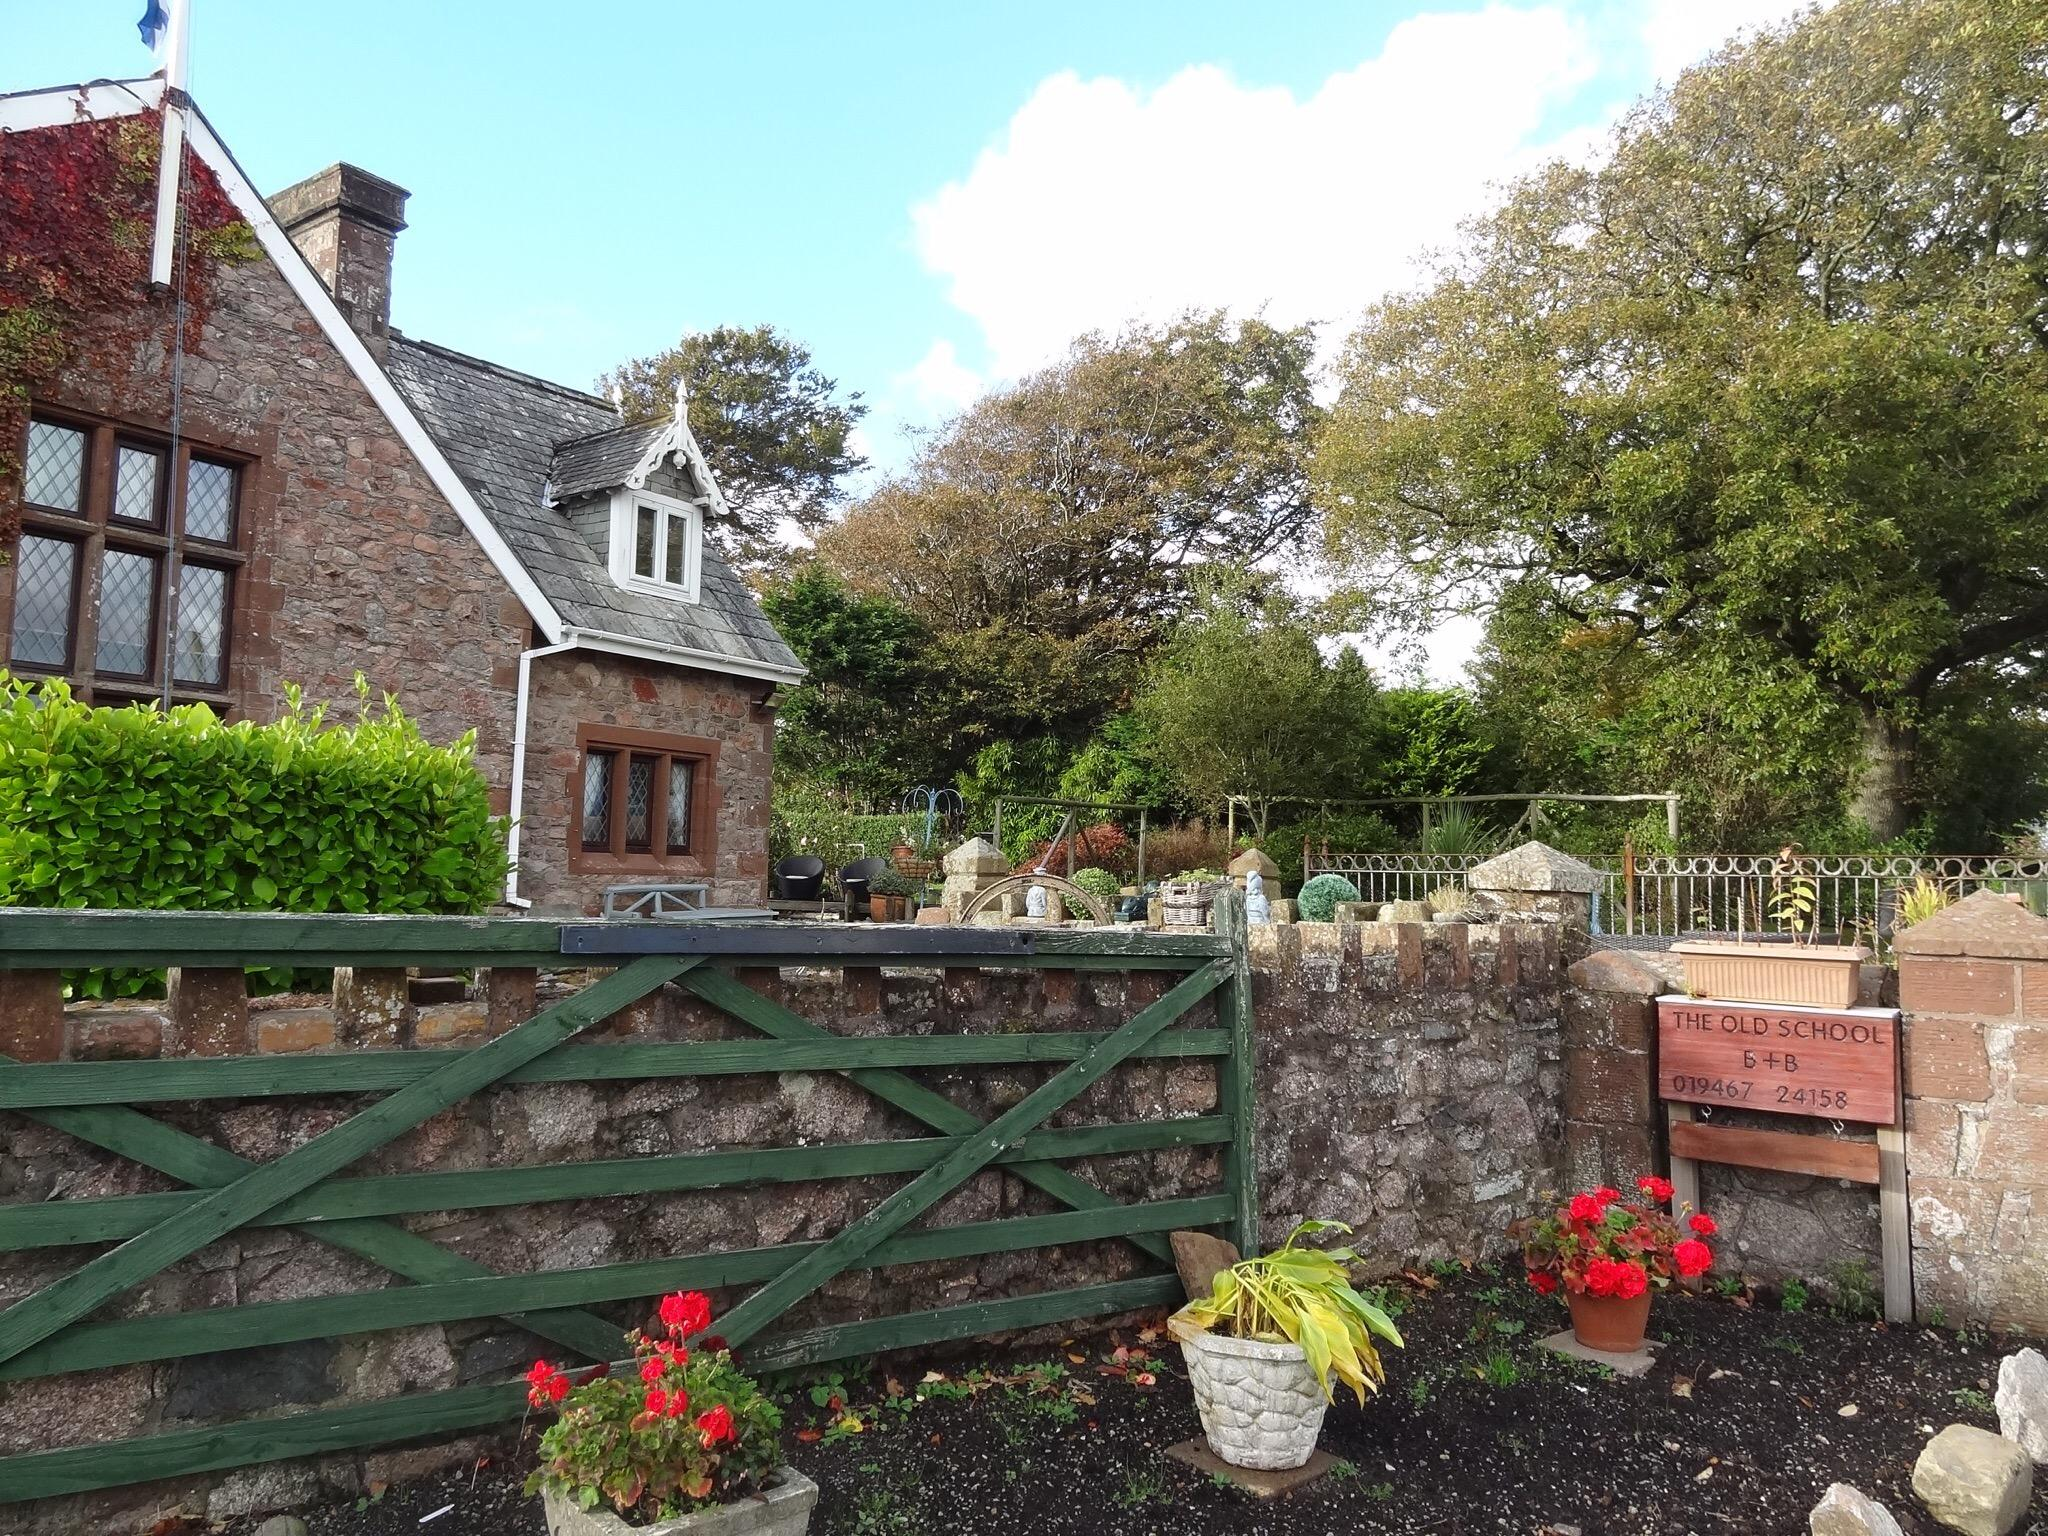 The Old School Bed And Breakfast And Bettys Cottage | The Old School, Irton CA19 1YH | +44 7919 444761